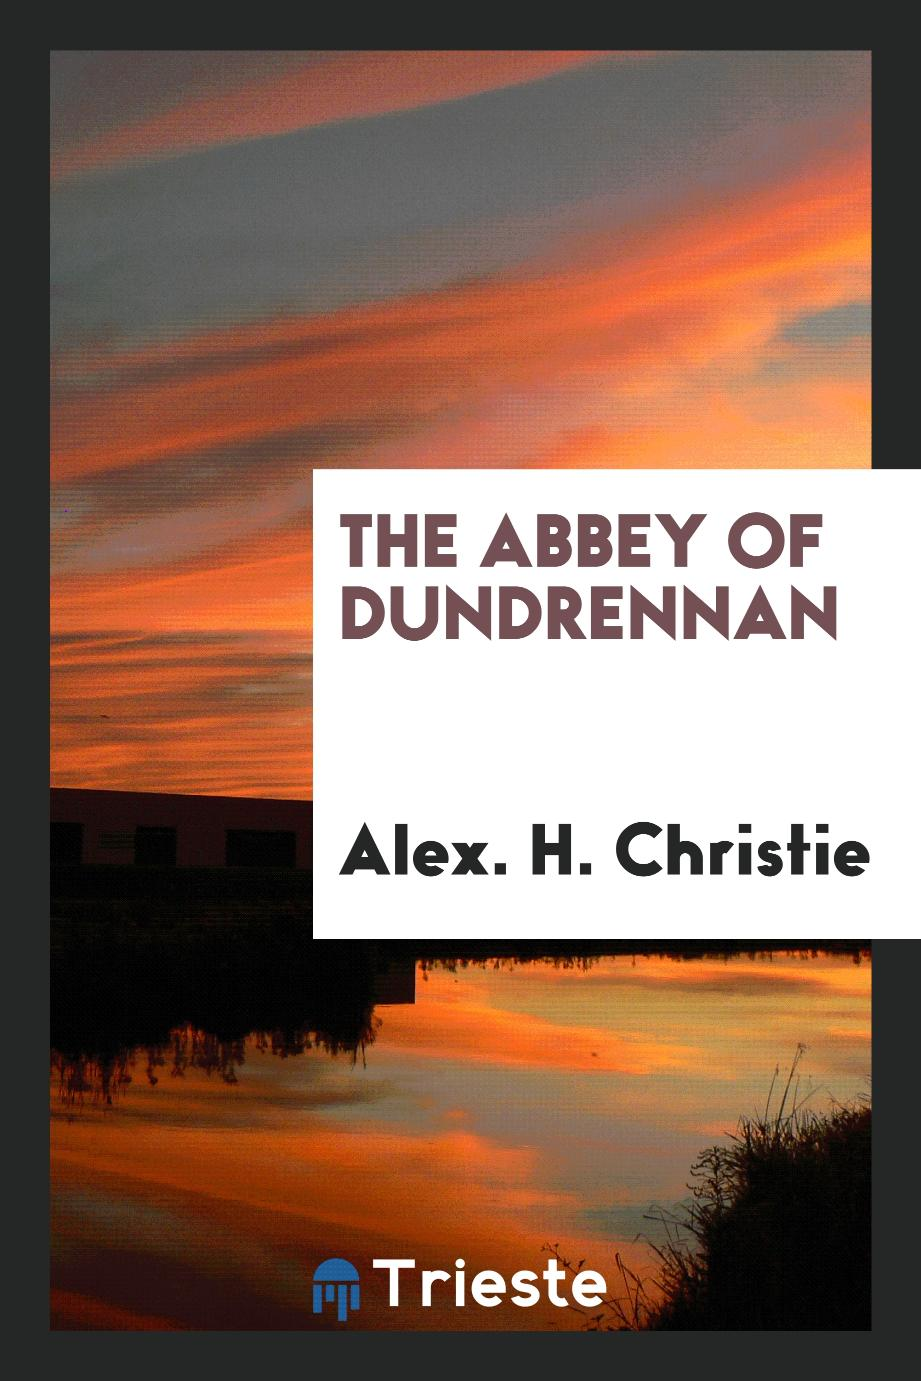 The abbey of Dundrennan